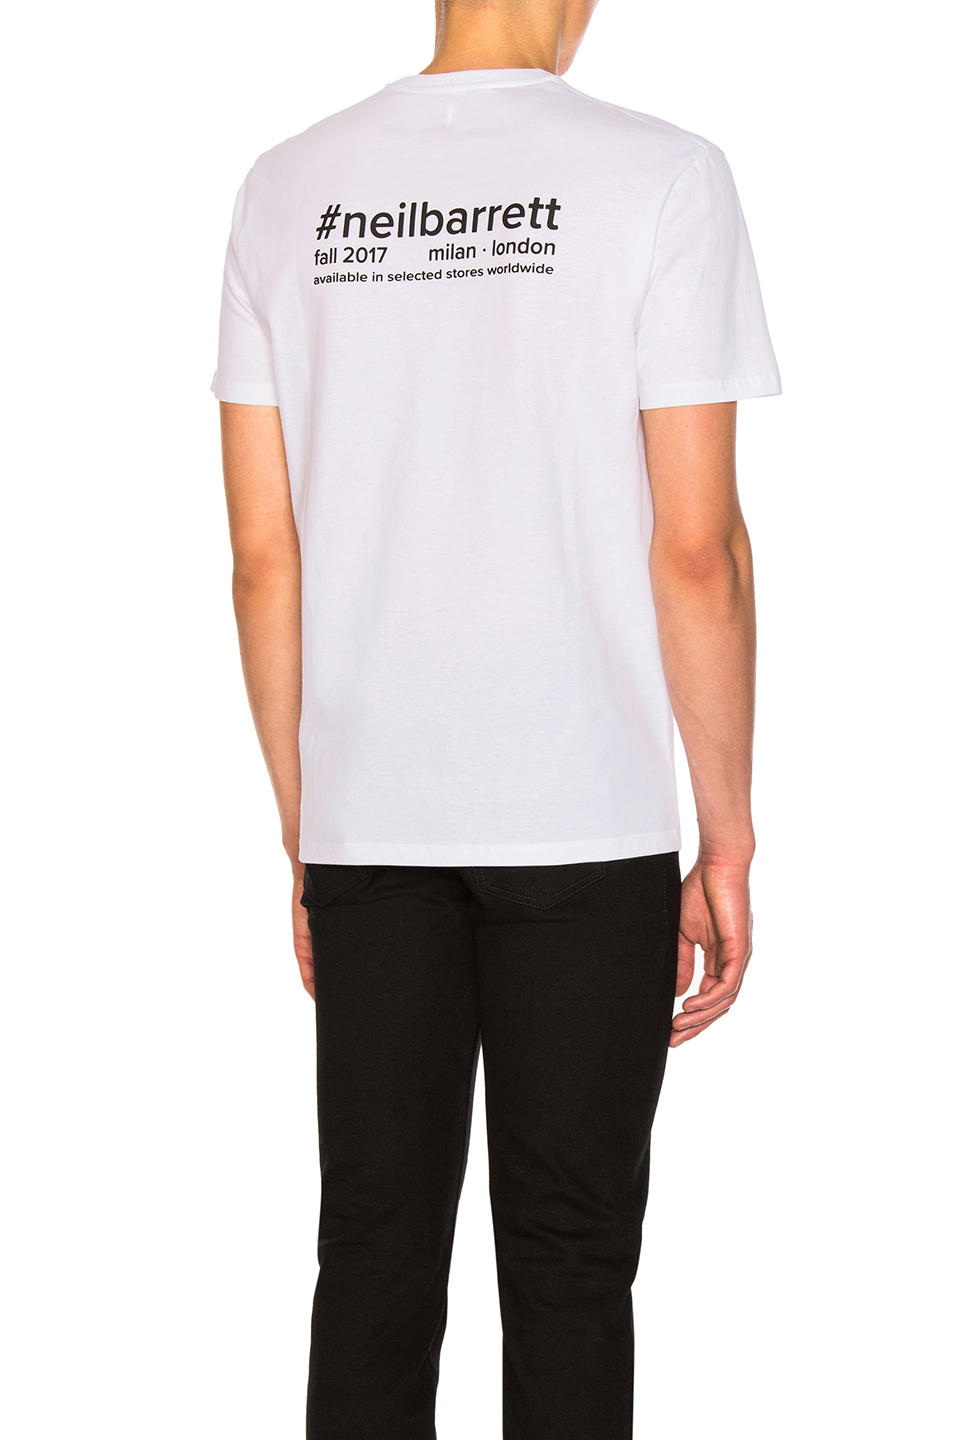 Neil Barrett Hashtag Tee in White